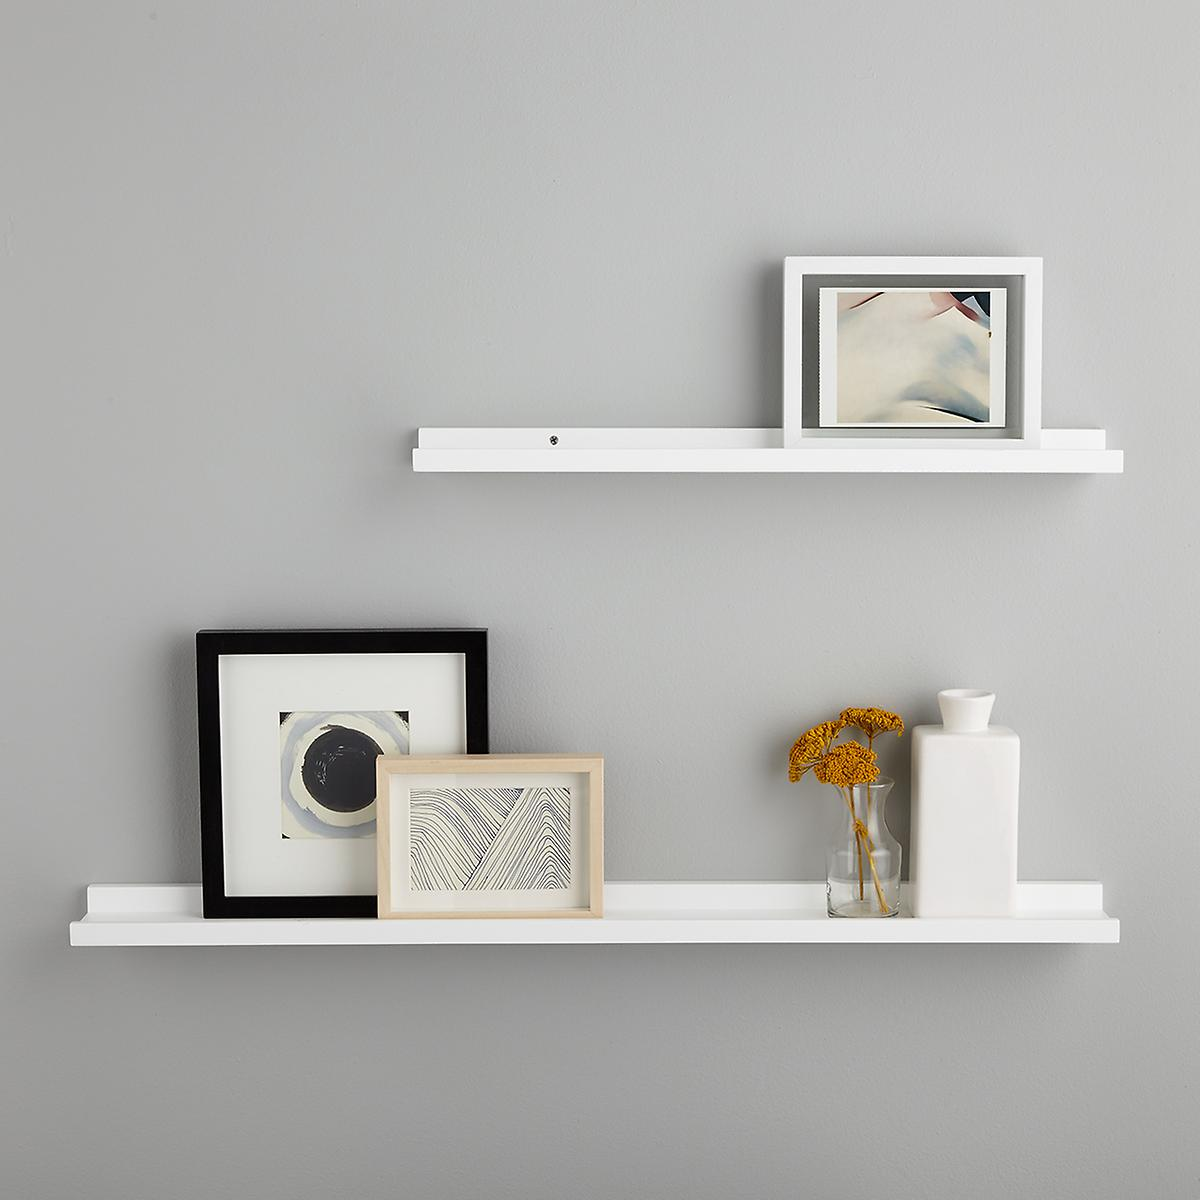 white ledge wall shelves the container shelf floating for frames modern open kitchen ideas inch twin mattress over toilet cabinet mitre mega hours canadian tire storage make own